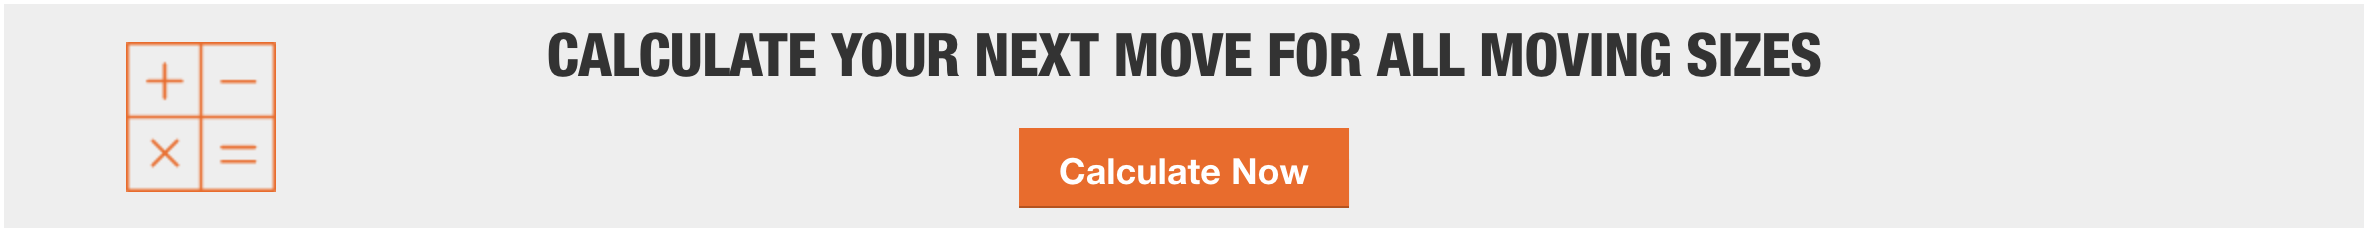 CALCULATE YOUR NEXT MOVE FOR ALL MOVING SIZES